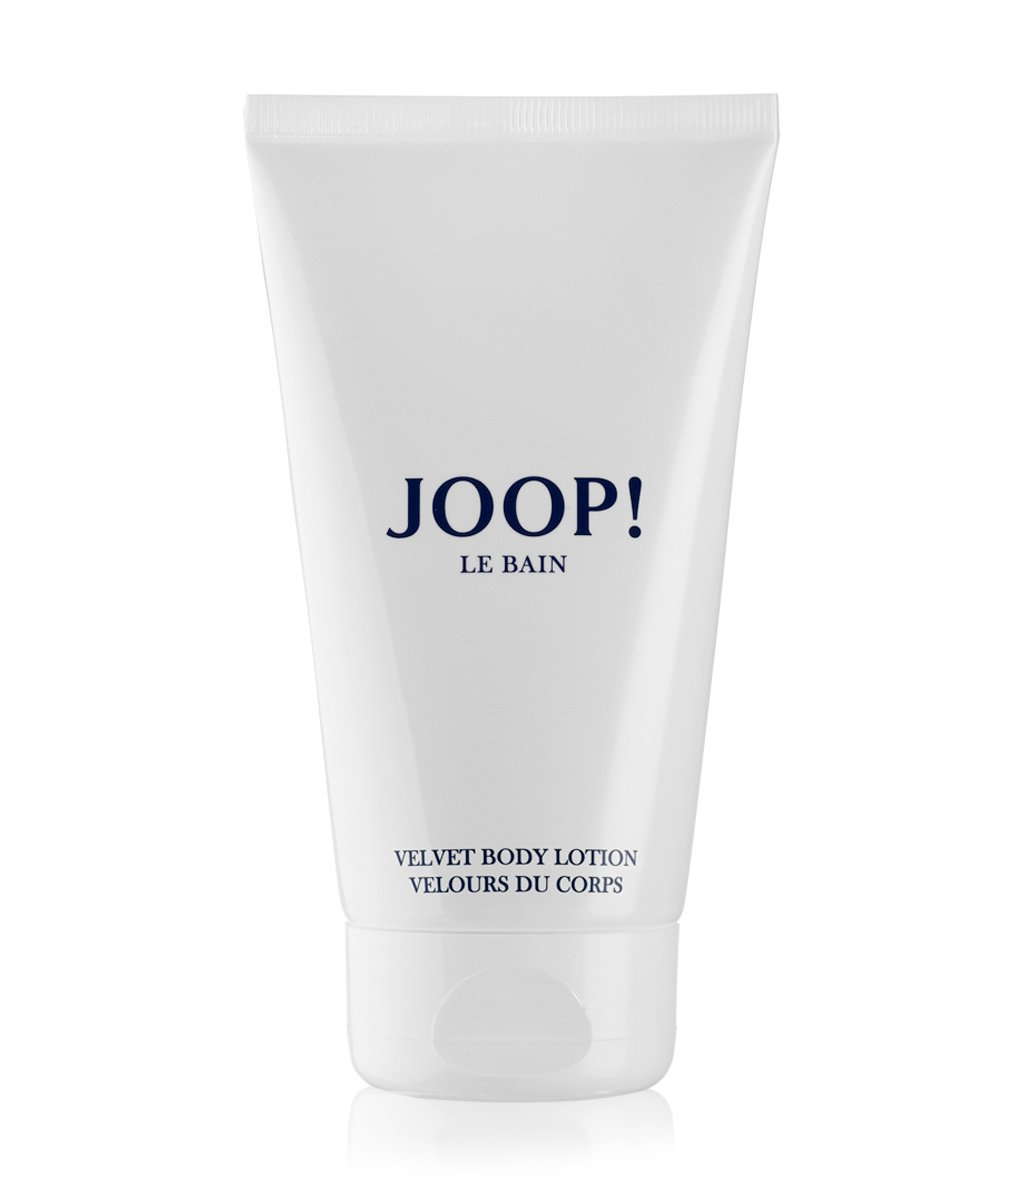 joop le bain bodylotion online bestellen flaconi. Black Bedroom Furniture Sets. Home Design Ideas